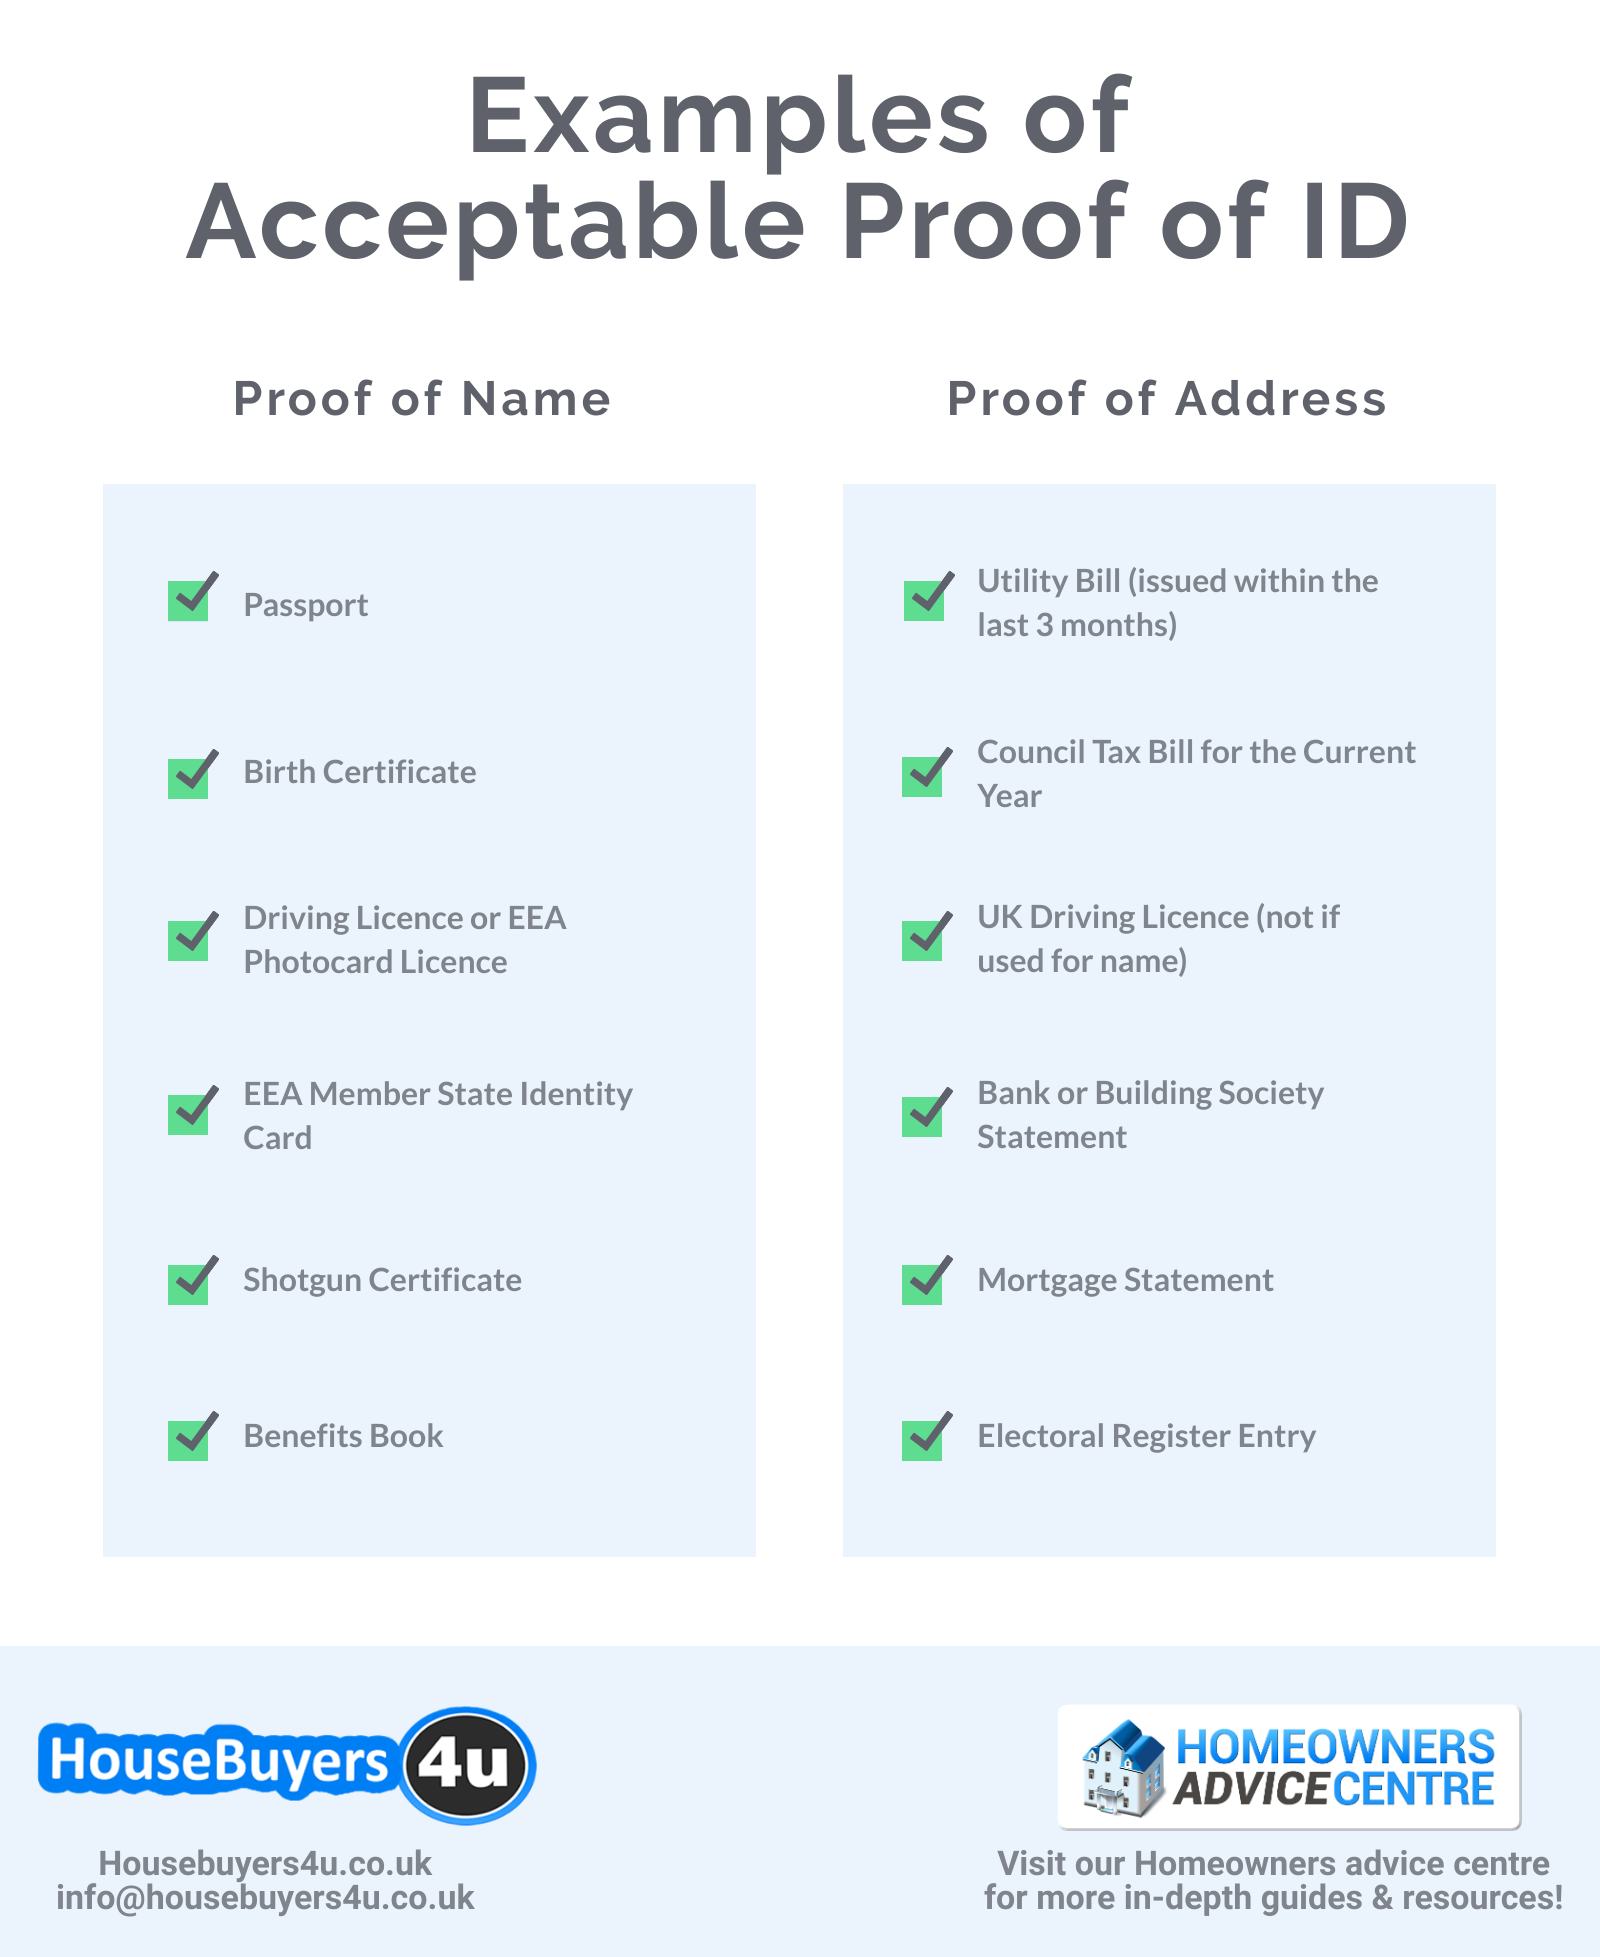 Acceptable proofs of ID that are needed when selling or buying a house